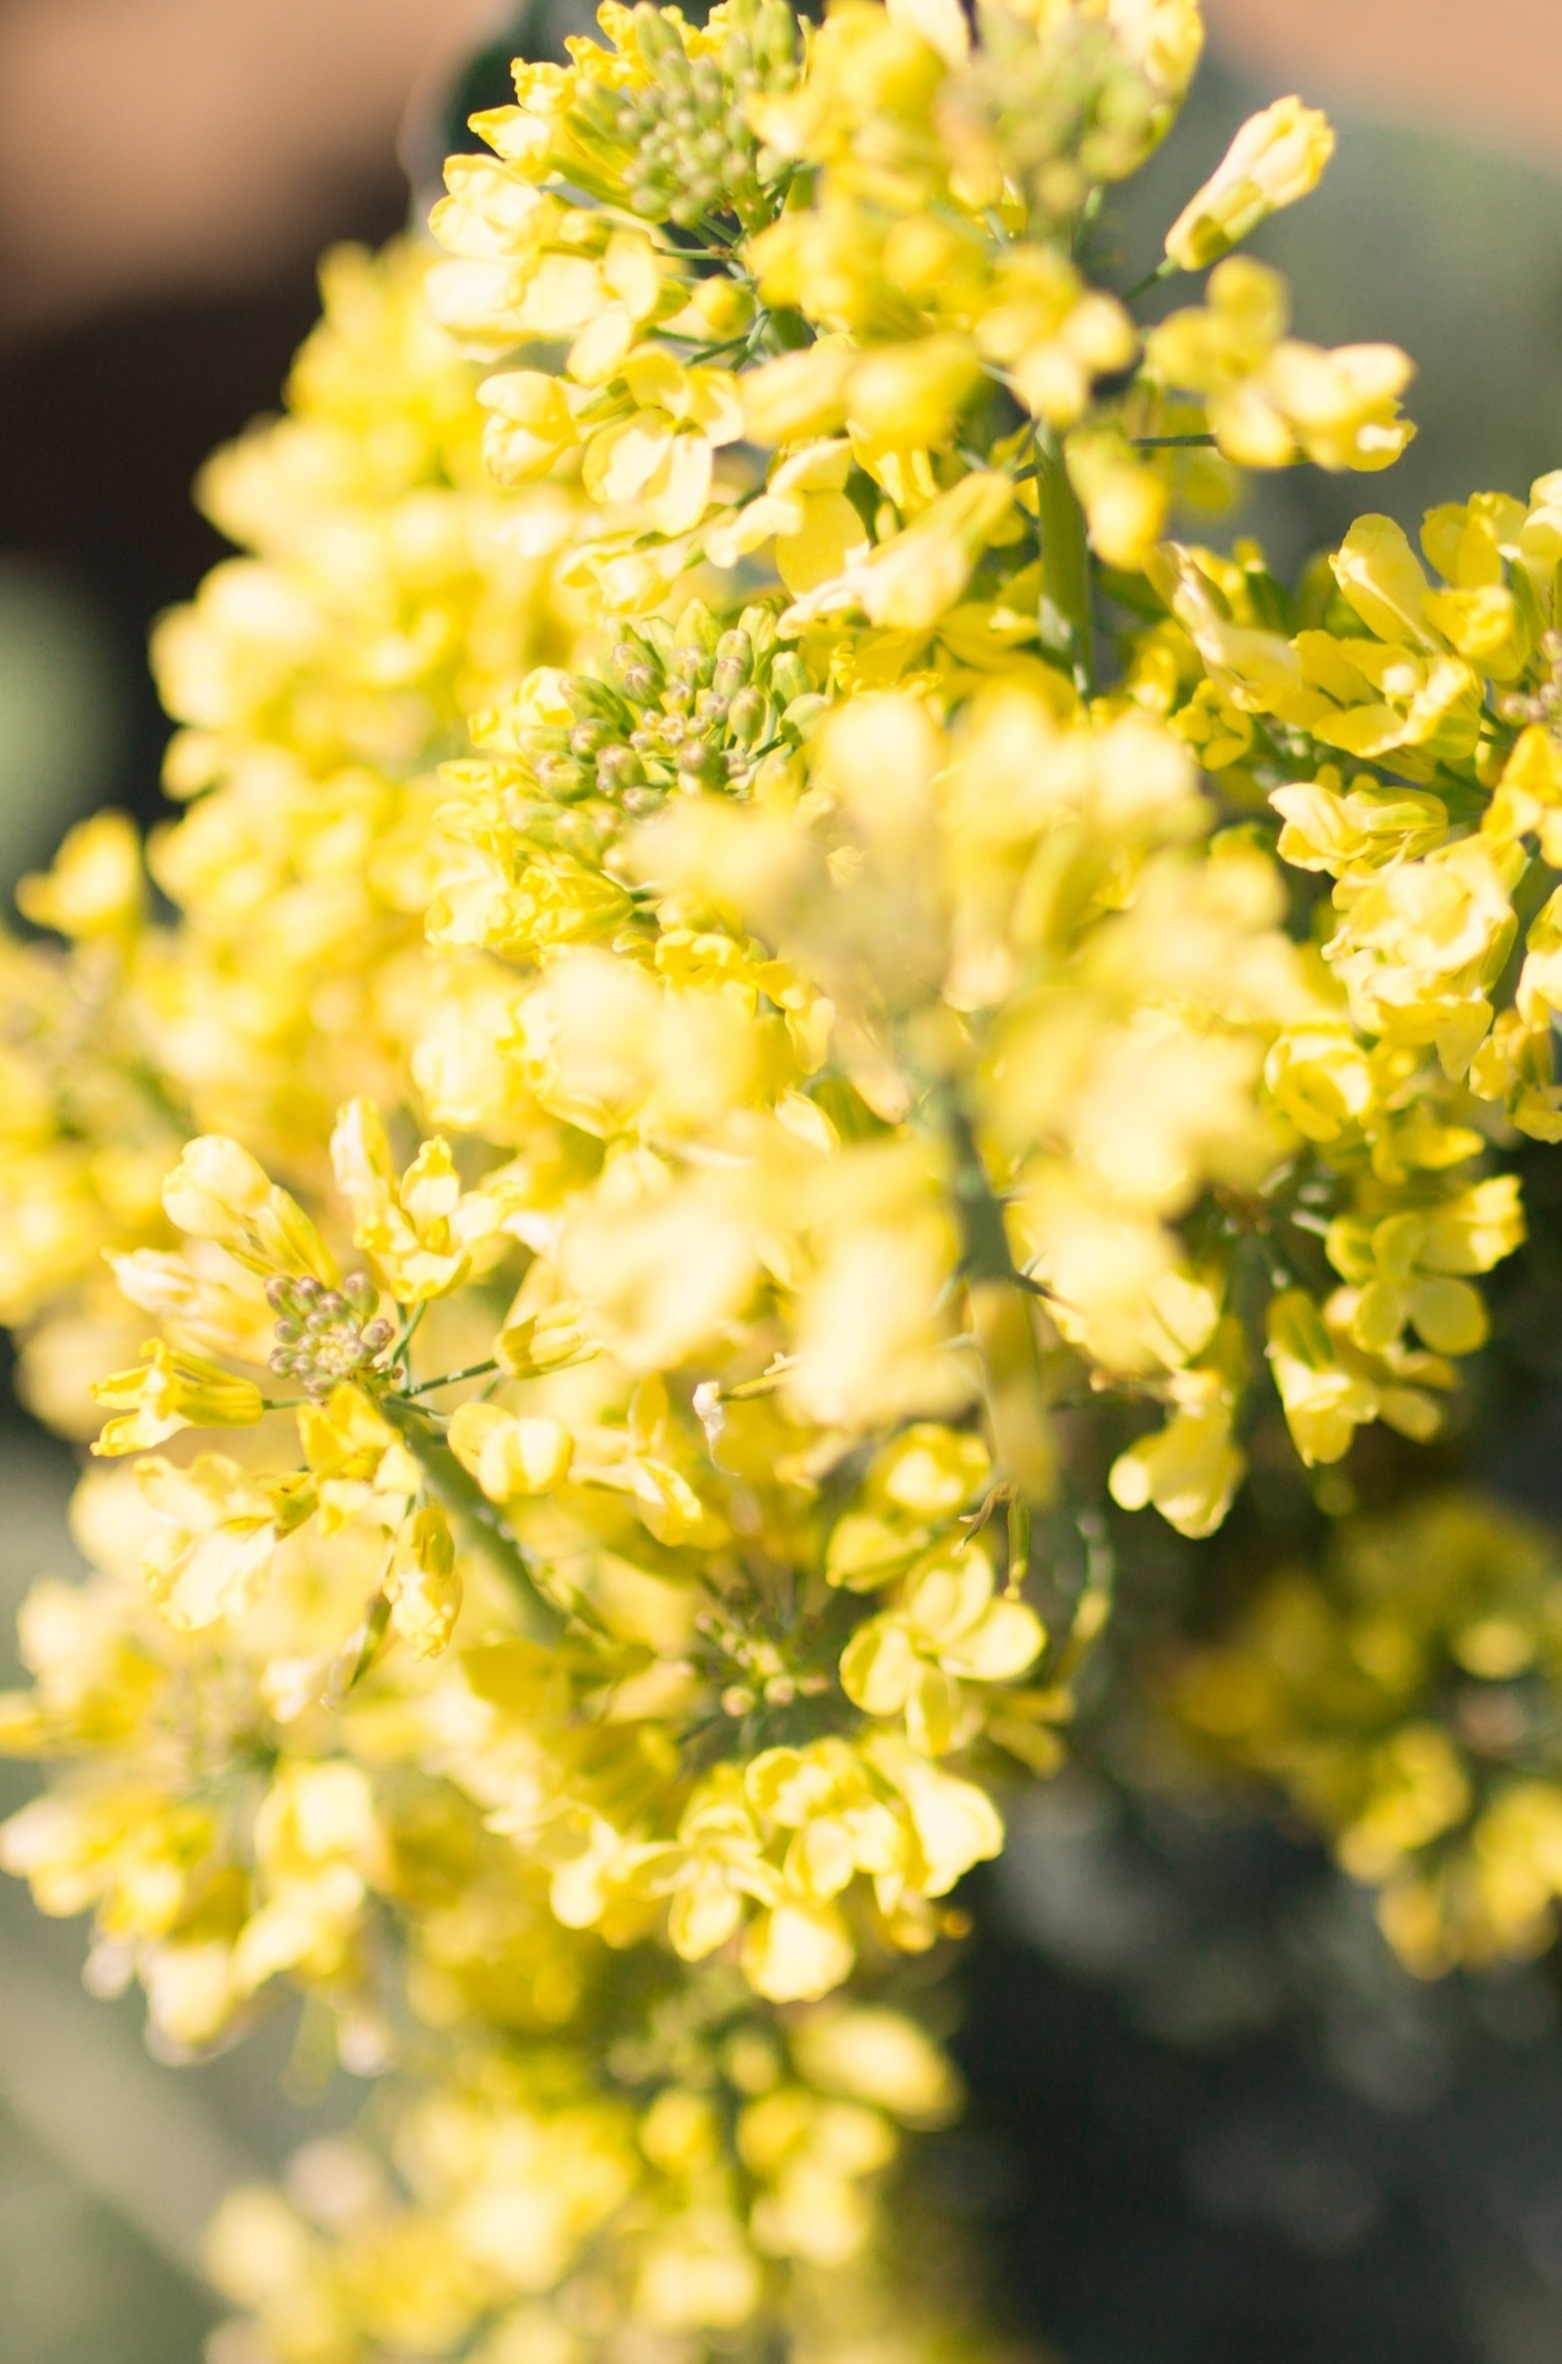 If left to grow too long broccoli heads will bloom into a cluster of bright yellow flowers.  If left too long after harvest the buds can turn a wilted yellow and give off a bitter taste. Store refrigerated no longer than 3-5 days.